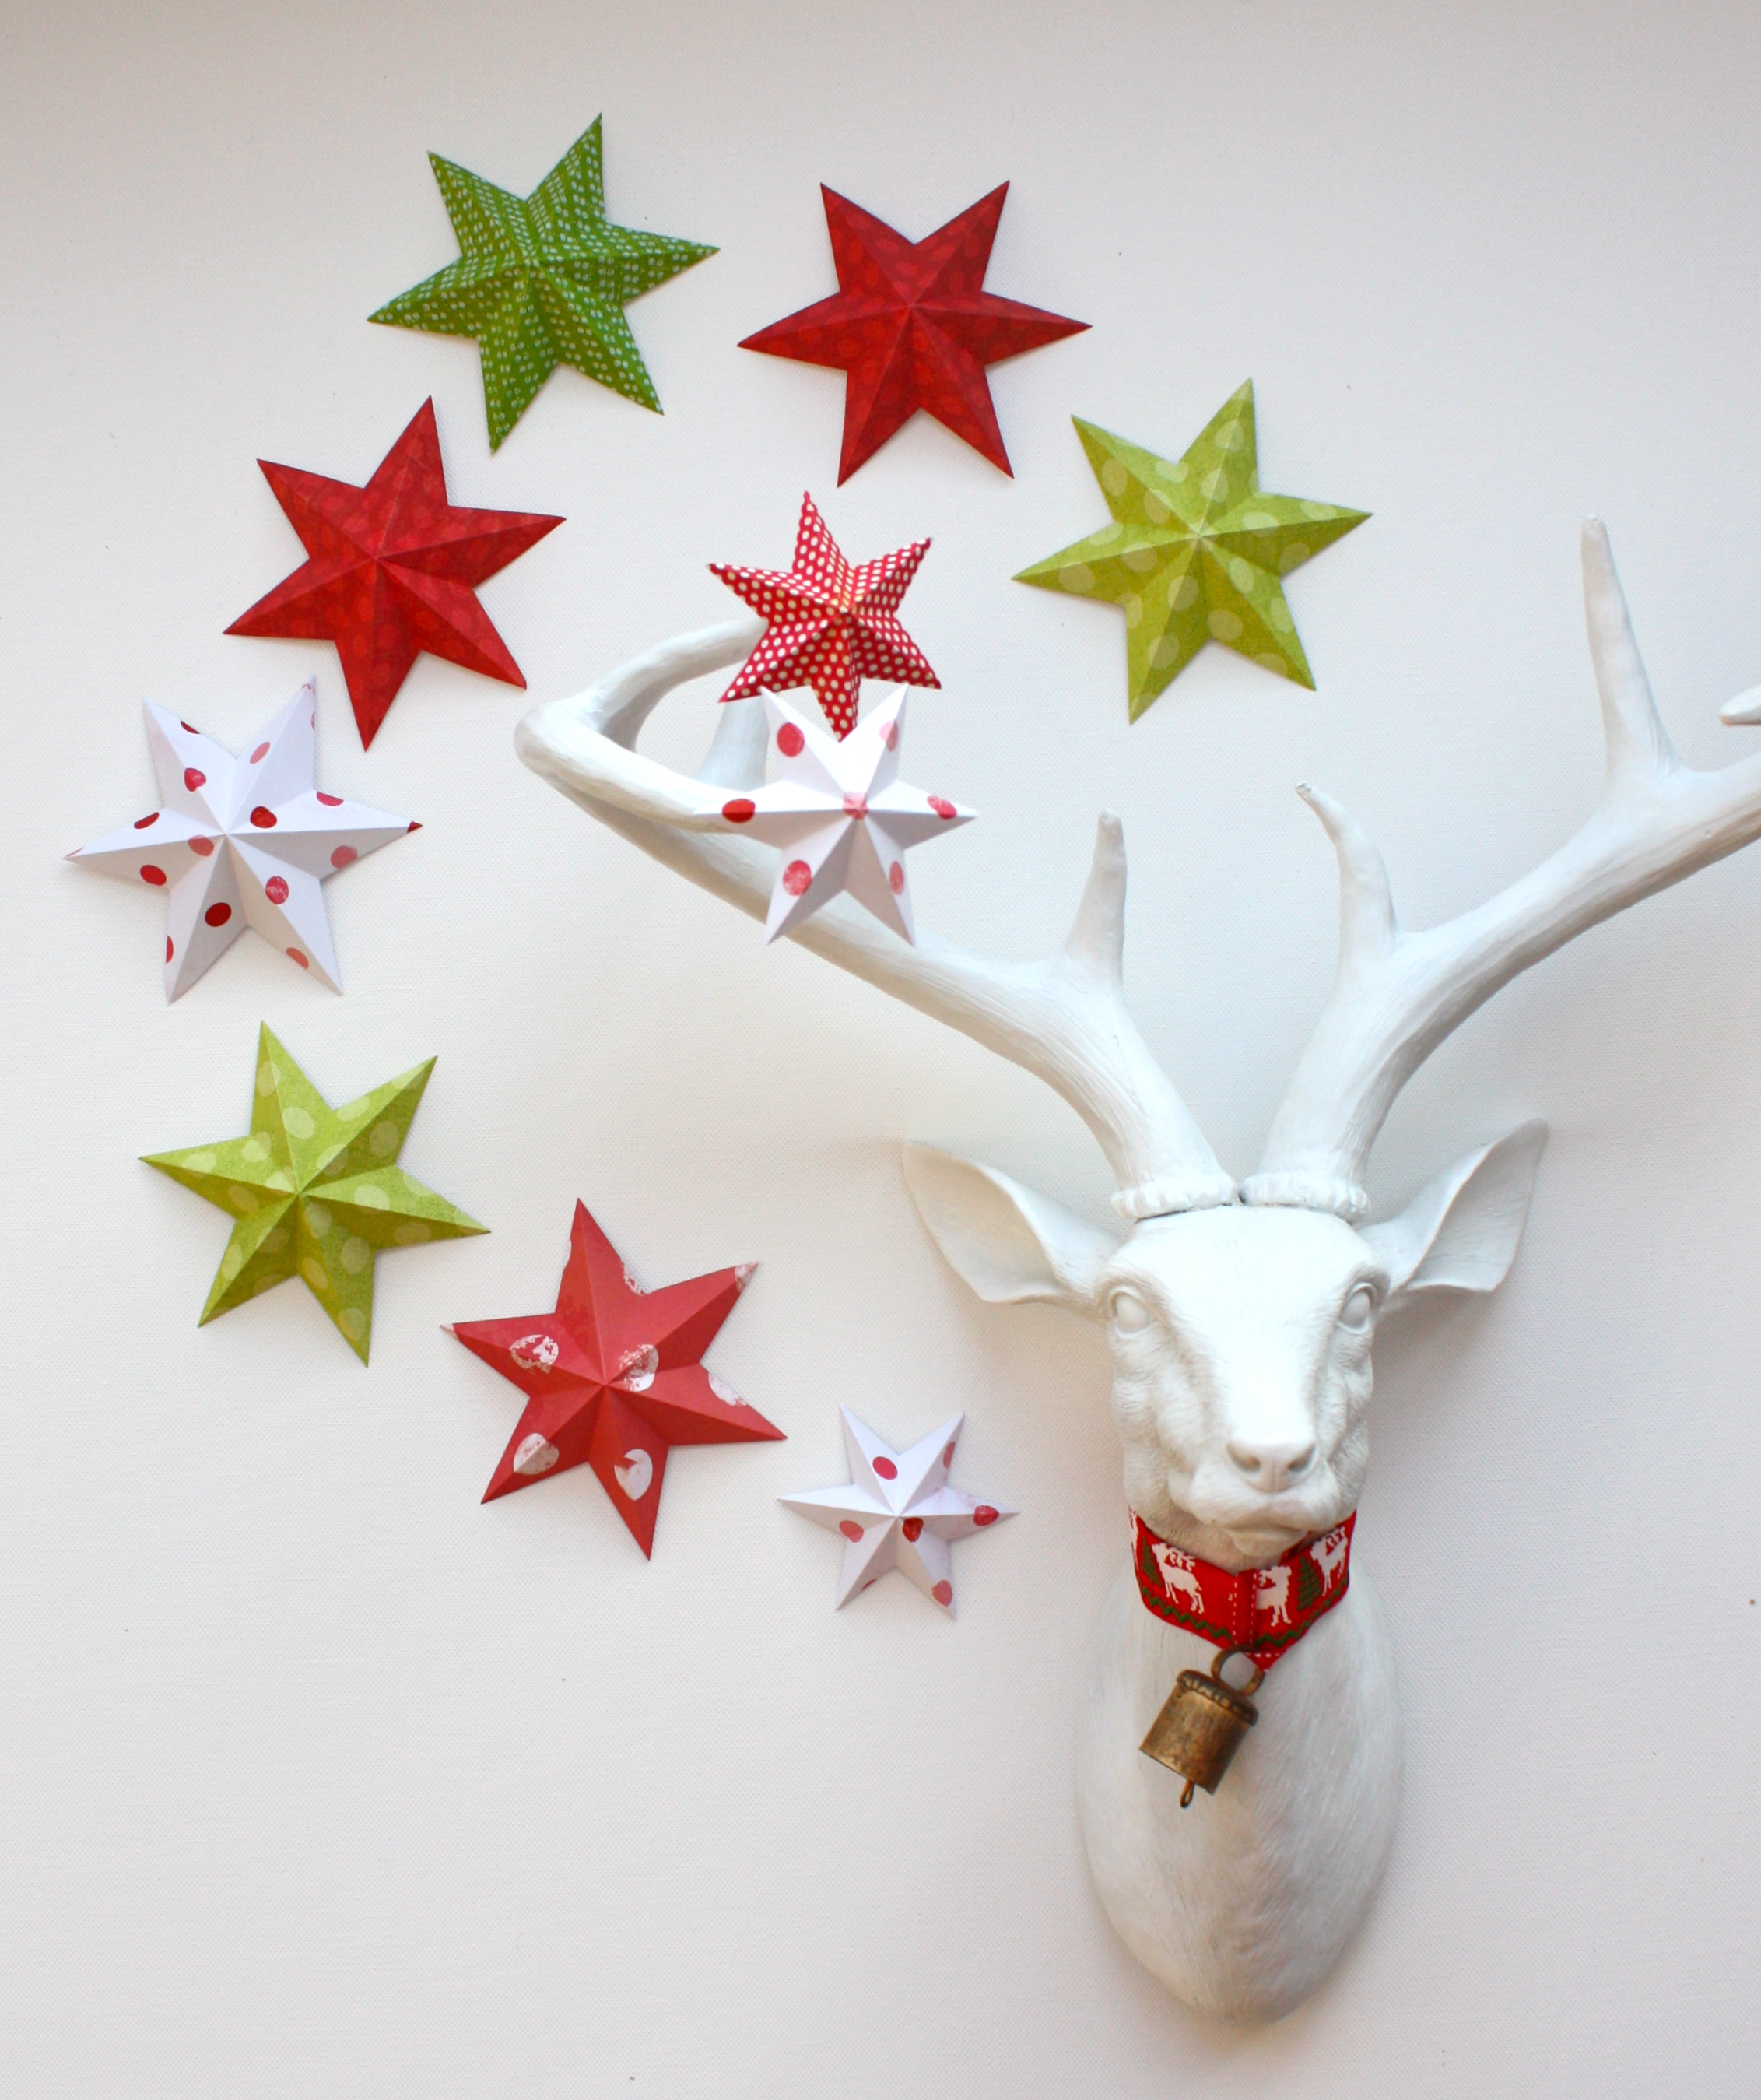 Remodelaholic | 35 Paper Christmas Decorations To Make This Holiday ...